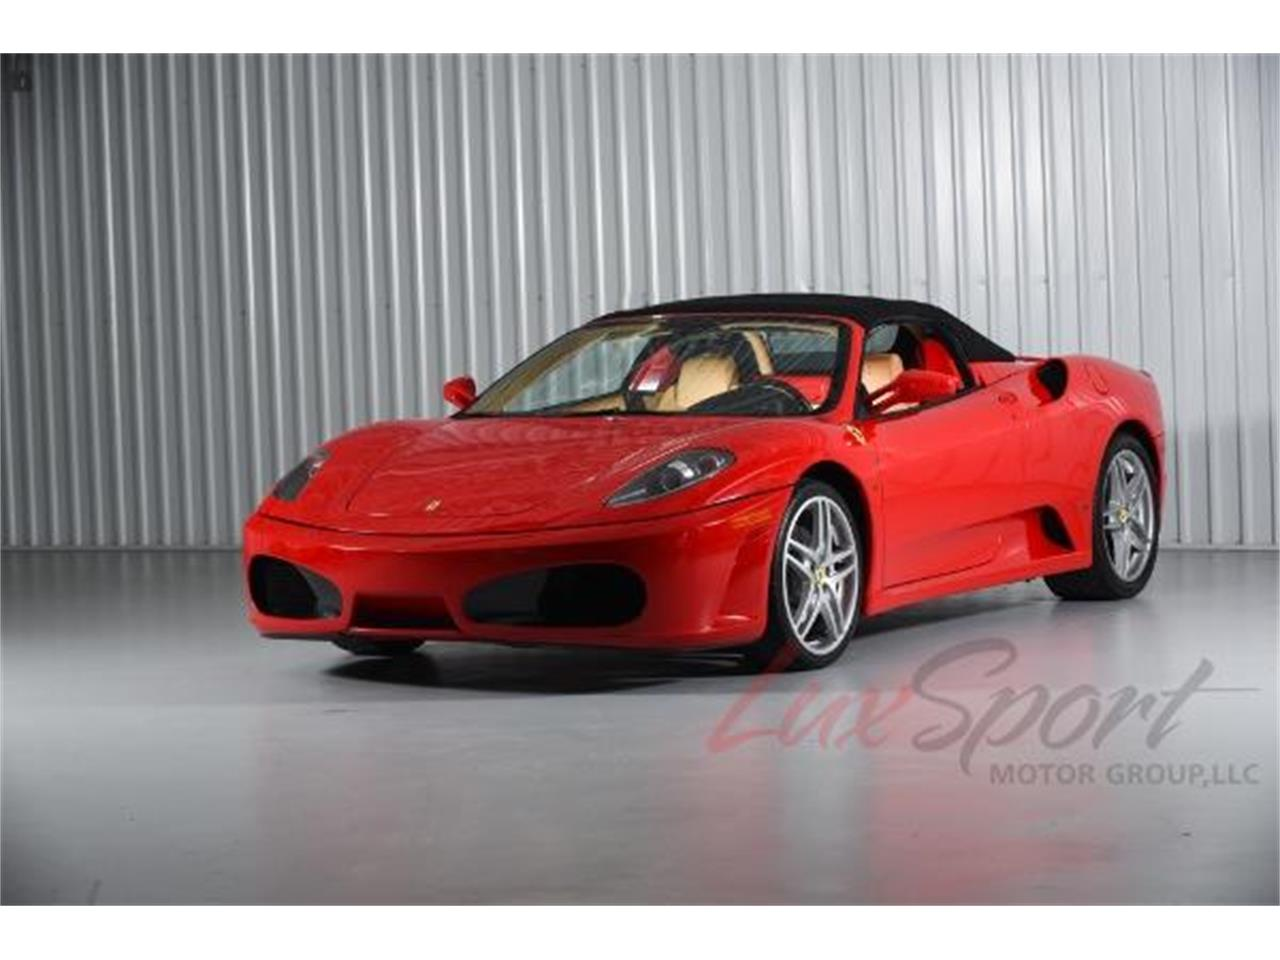 Large Picture of 2005 Ferrari Spider located in New York Auction Vehicle Offered by LuxSport Motor Group, LLC - JE3C